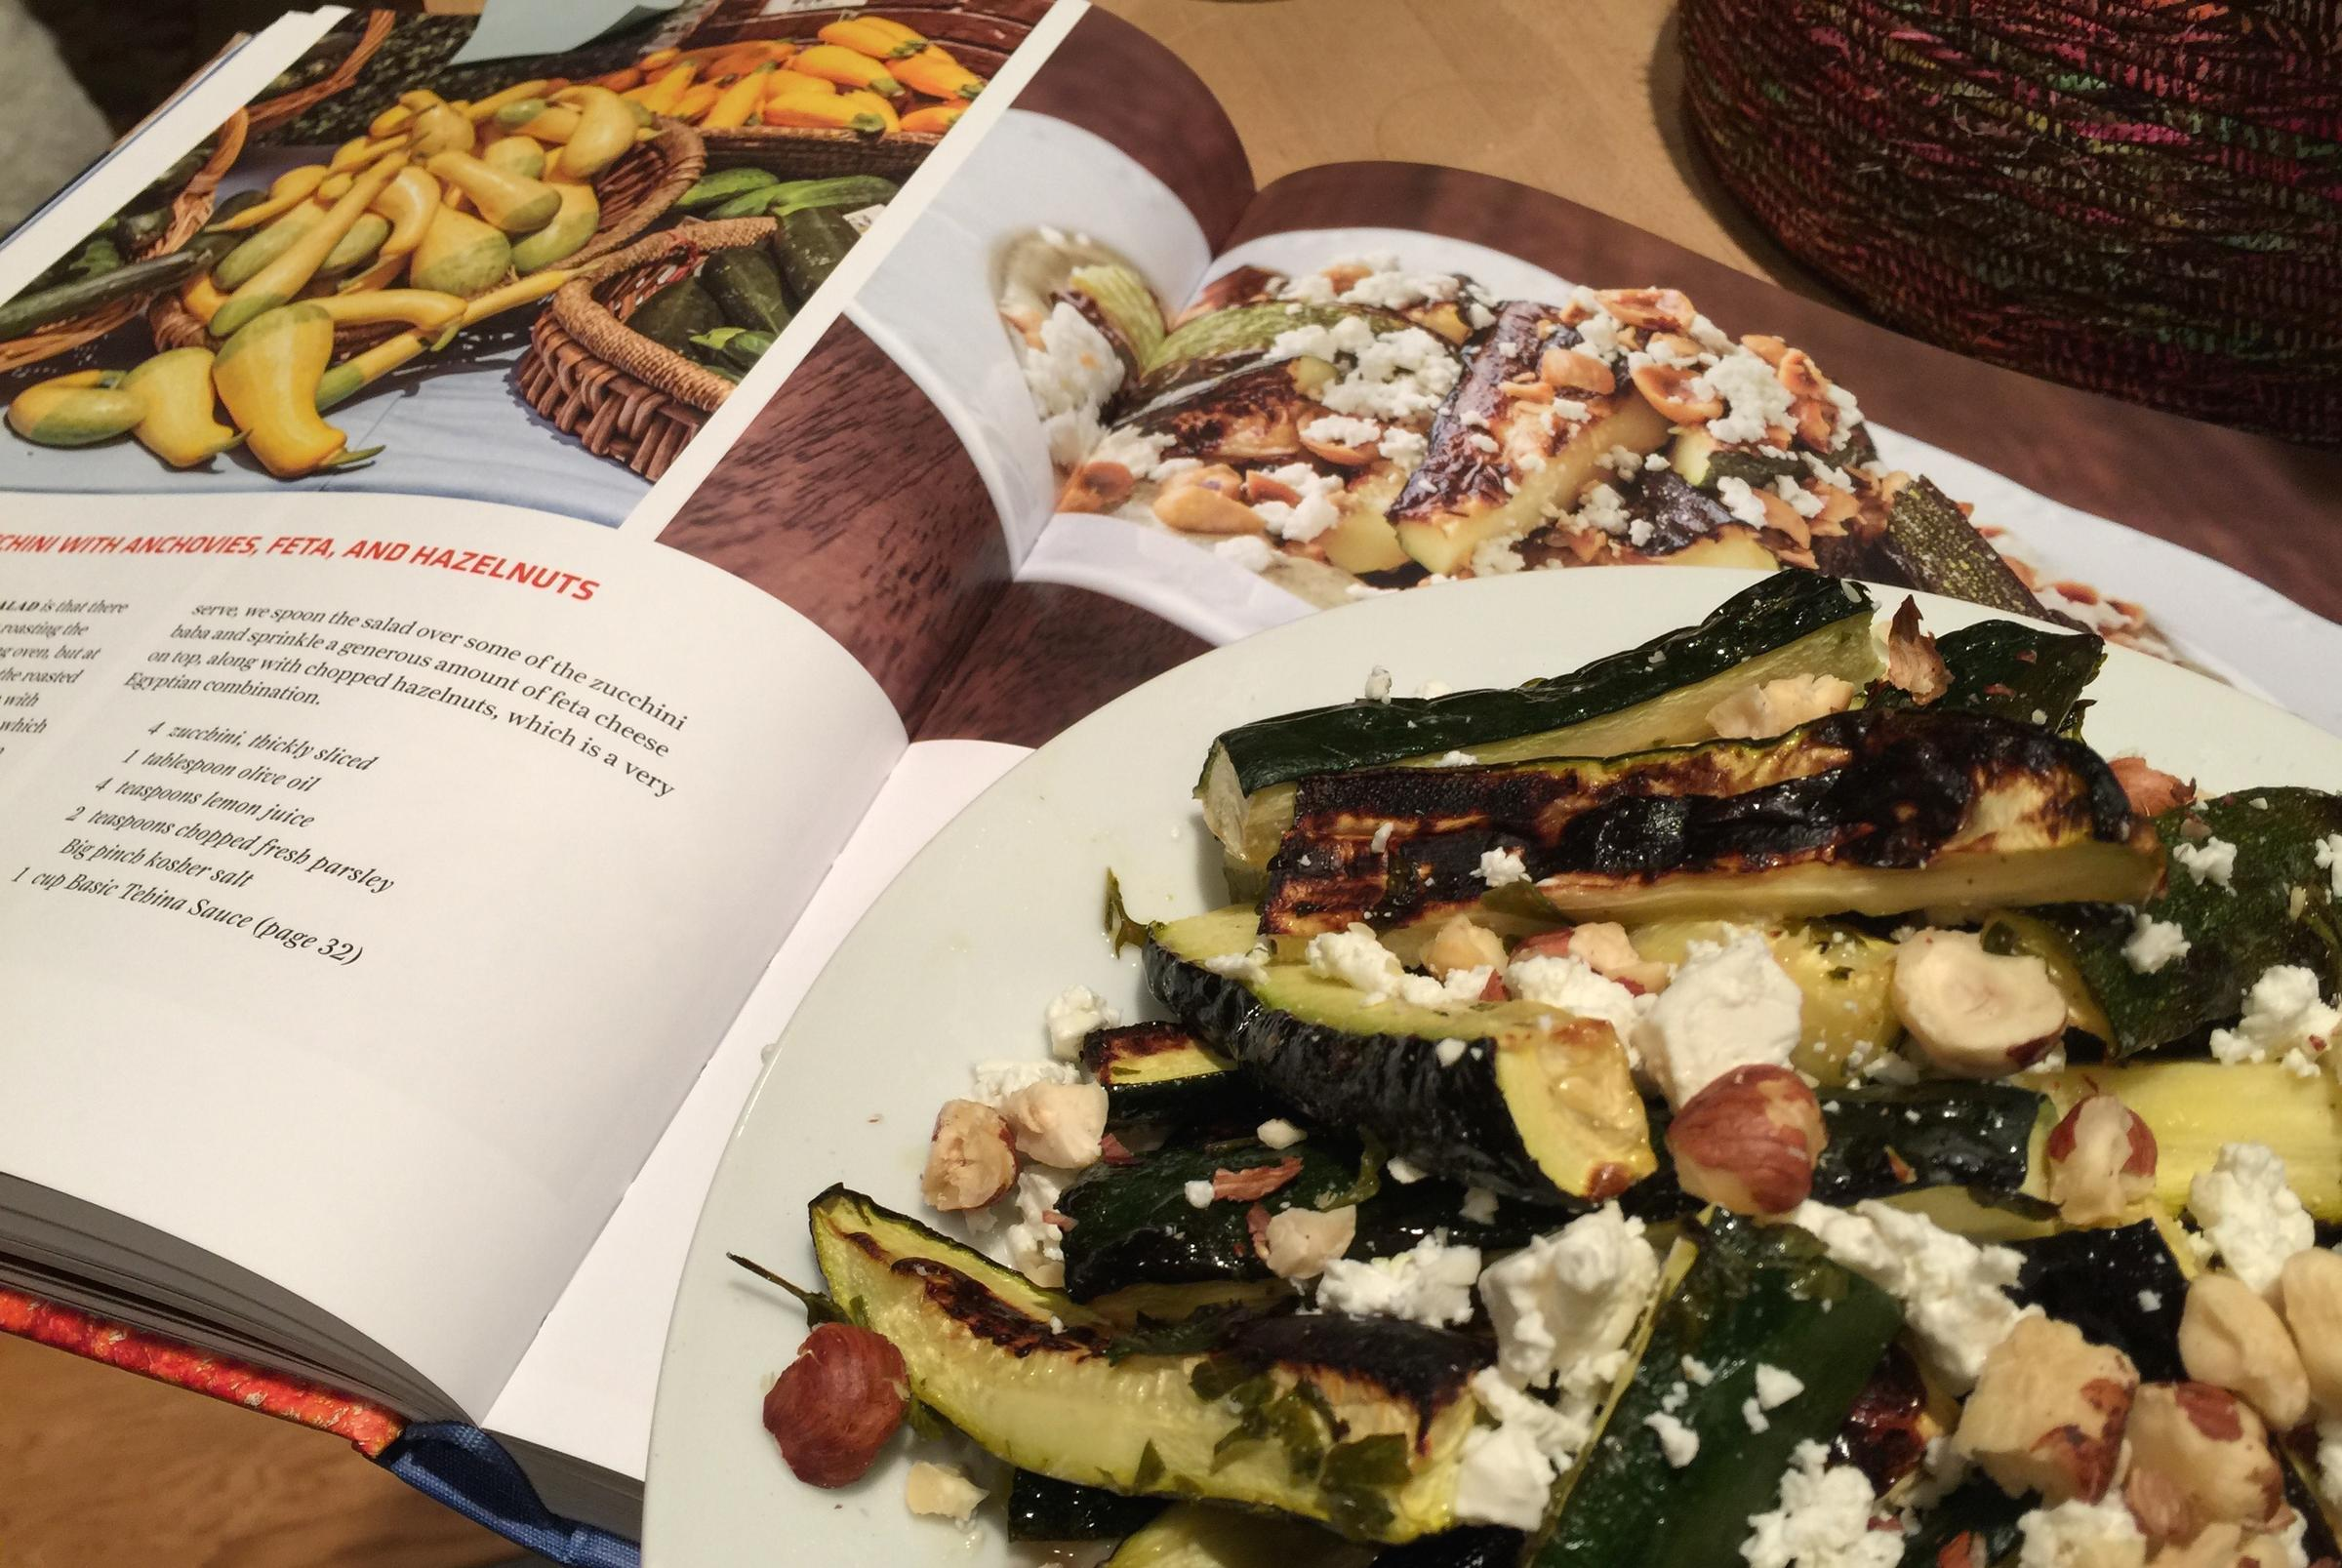 Food for thought the cookbook nancy leson says youve got to zahav from the zahav a world of israeli cooking roasted zucchini with anchovies feta and hazelnuts forumfinder Choice Image